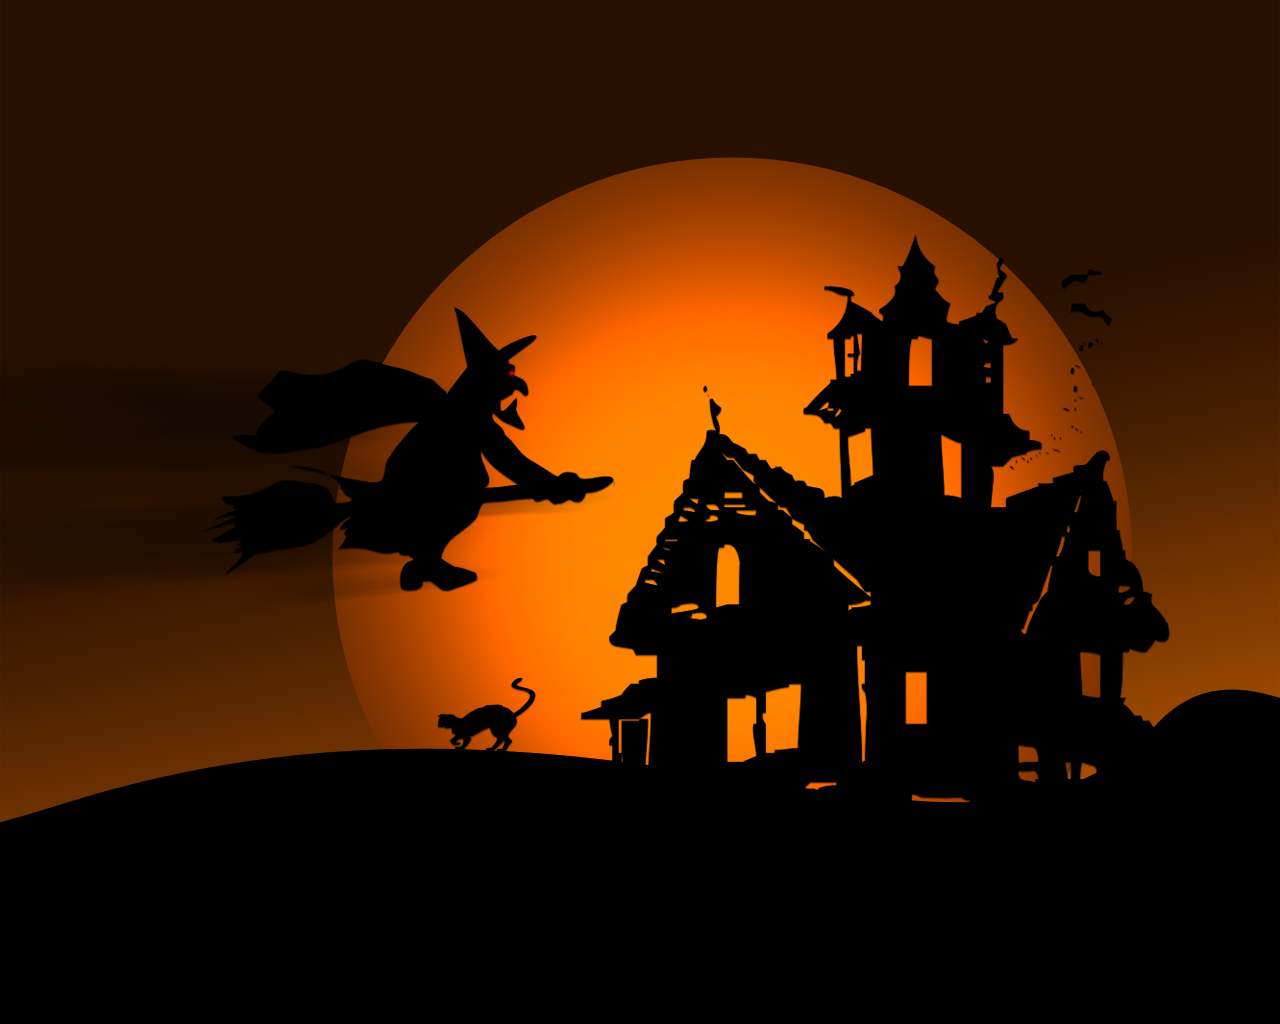 Witch flying over house